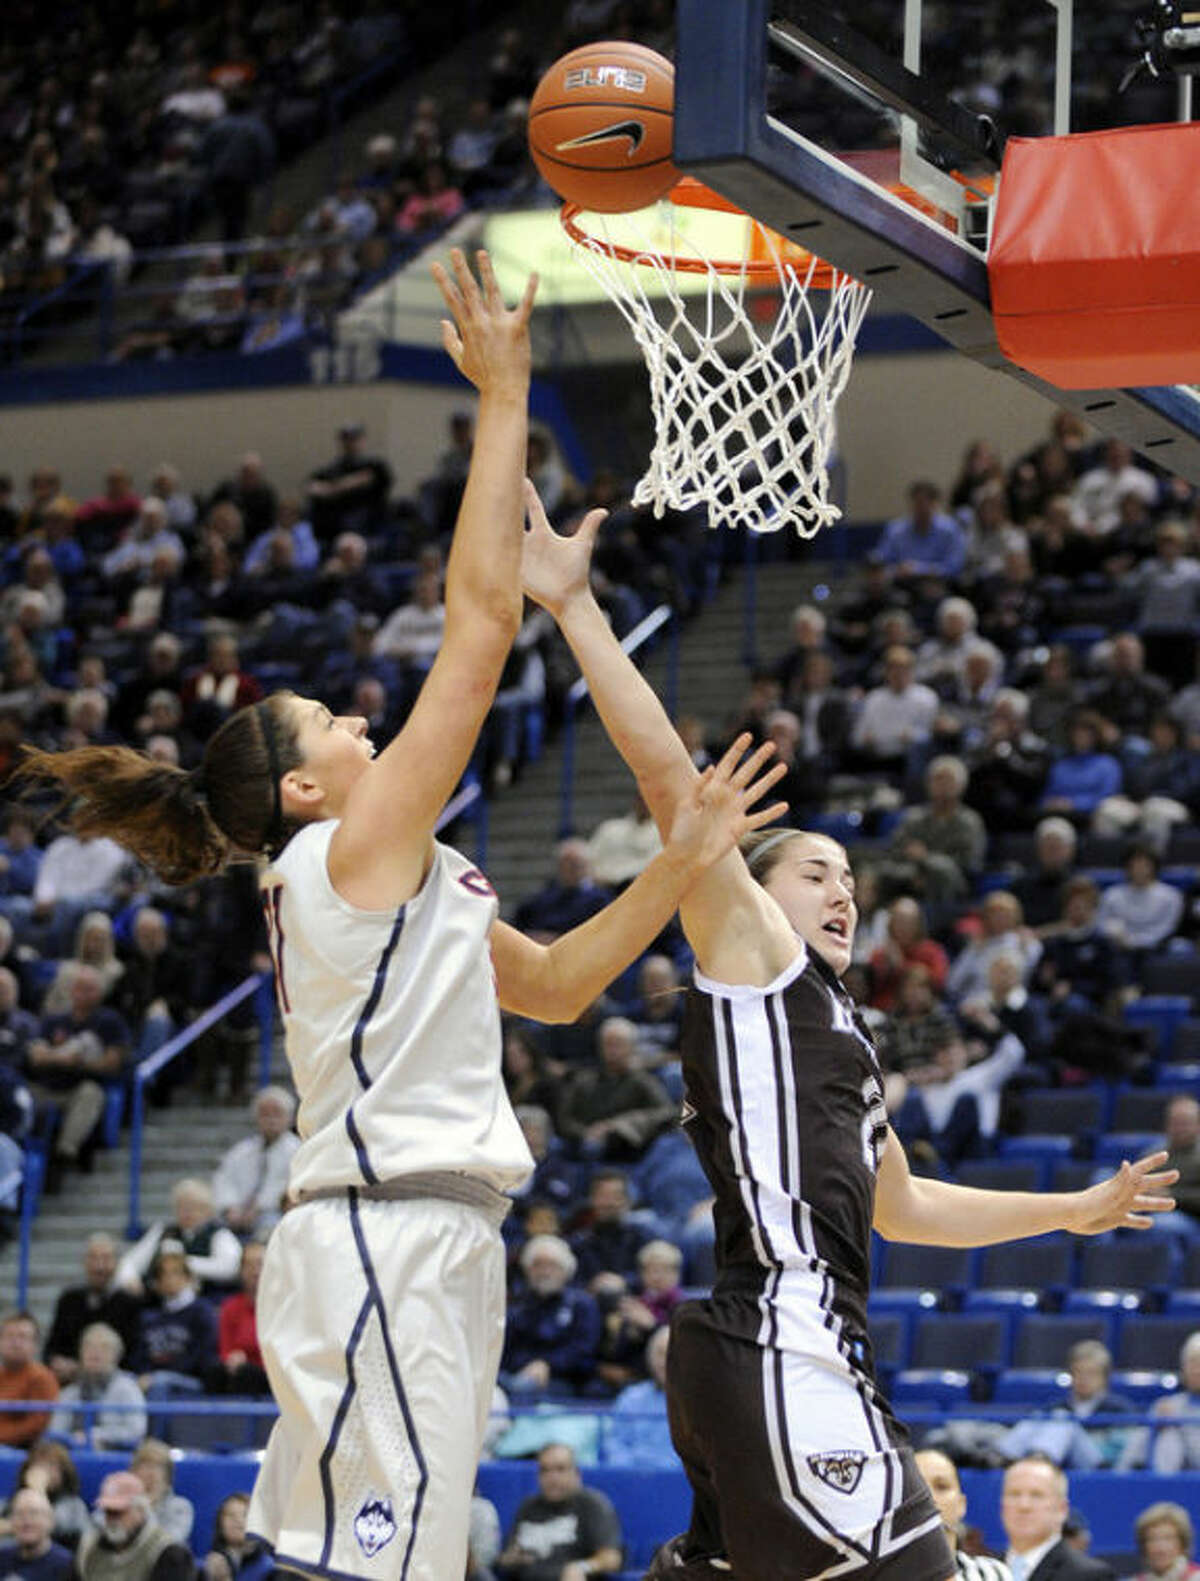 Connecticut's Stefanie Dolson, left, shoots over St. Bonaventure's Nyla Rueter during the first half of an NCAA college basketball game in Hartford, Conn., on Sunday, Nov. 24, 2013. (AP Photo/Fred Beckham)